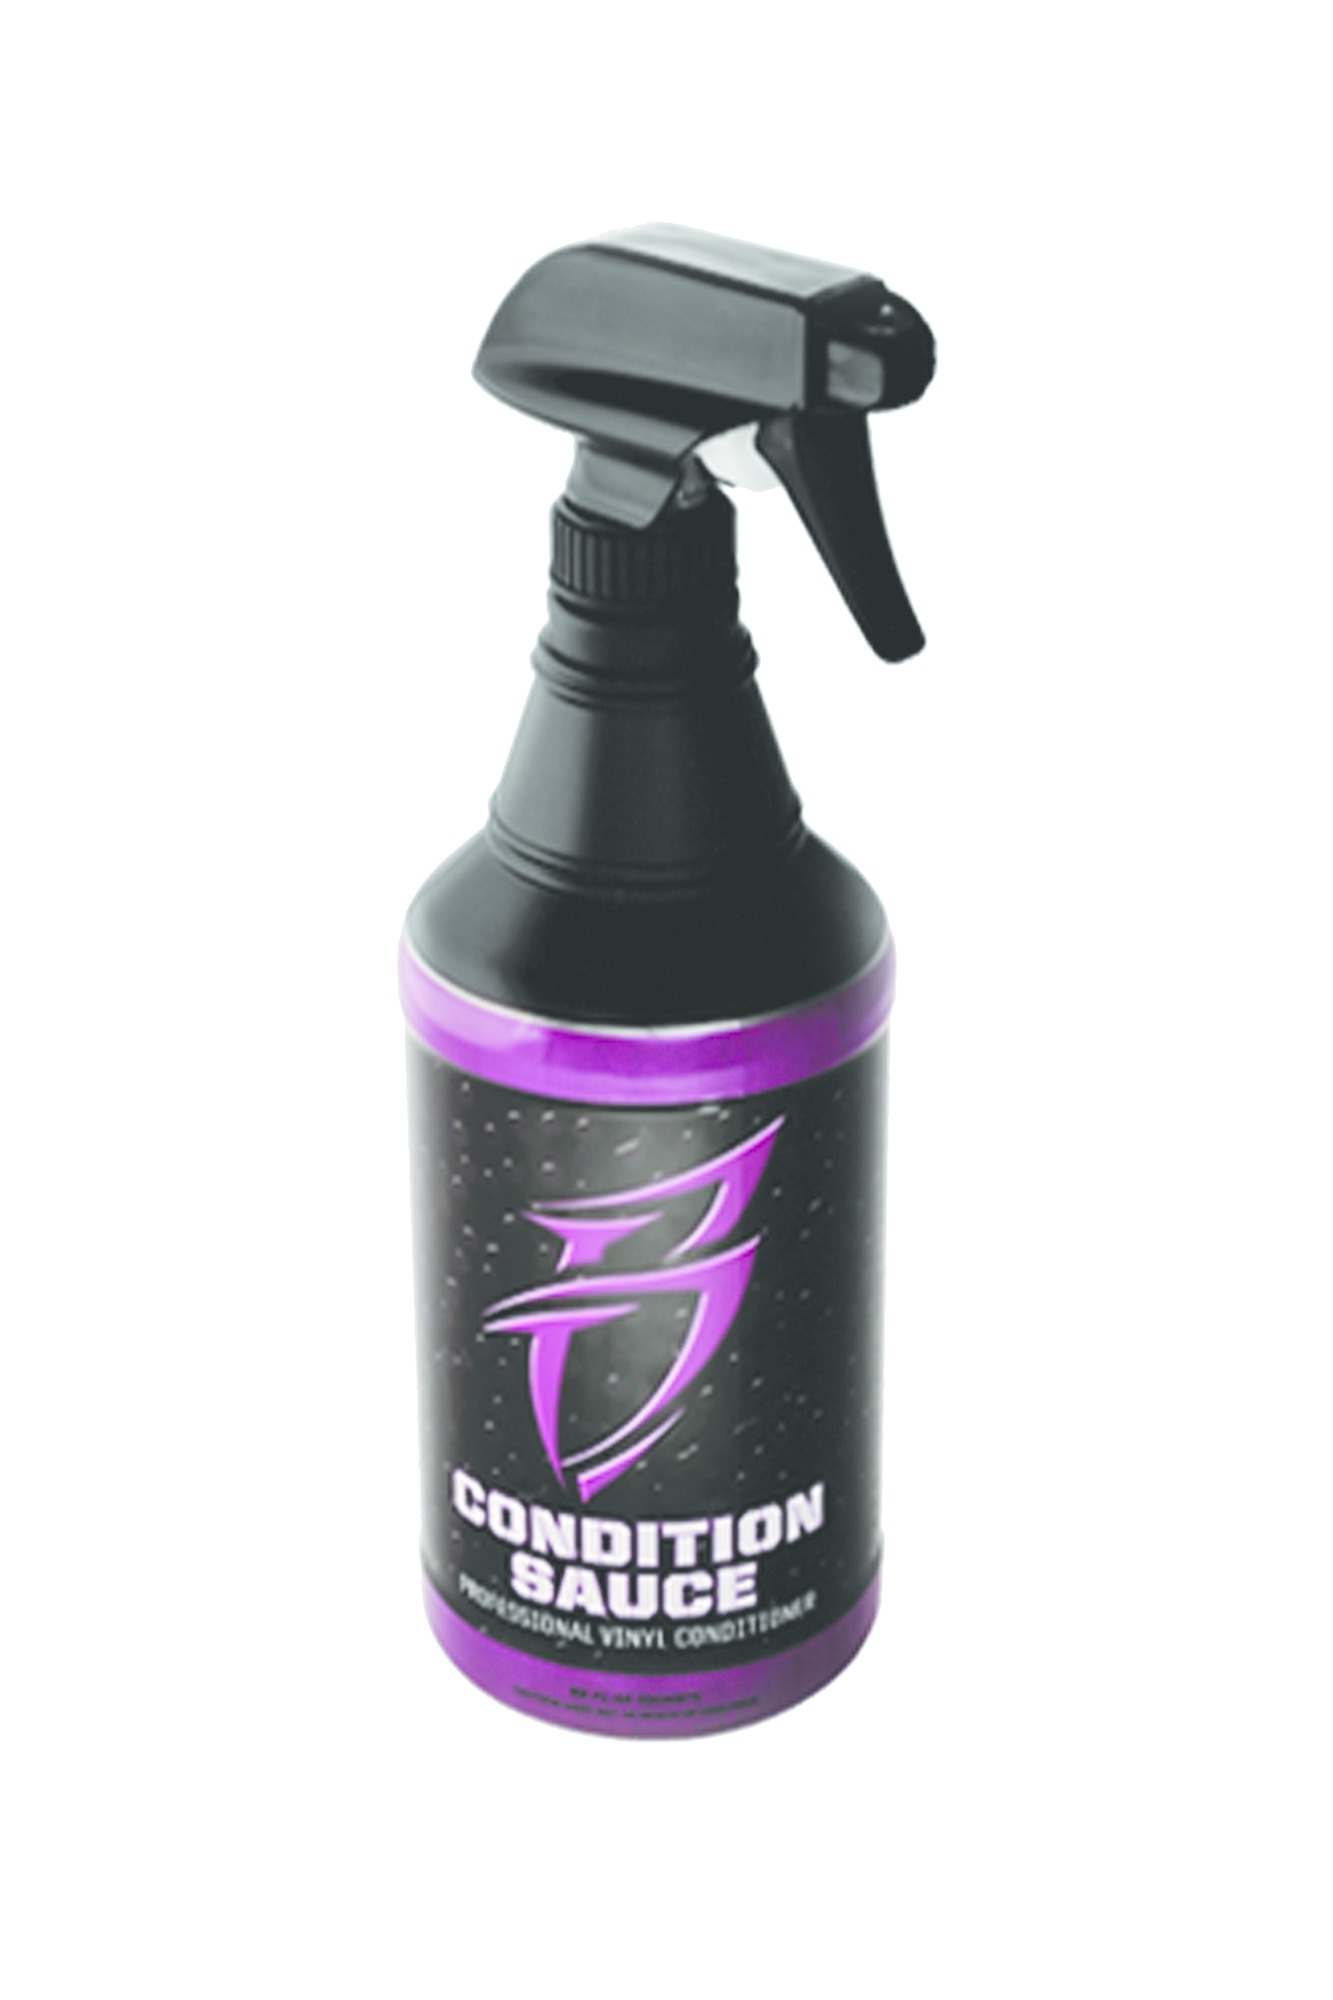 Boat Bling CS0032 Condition Sauce 32oz 100% UV Protection